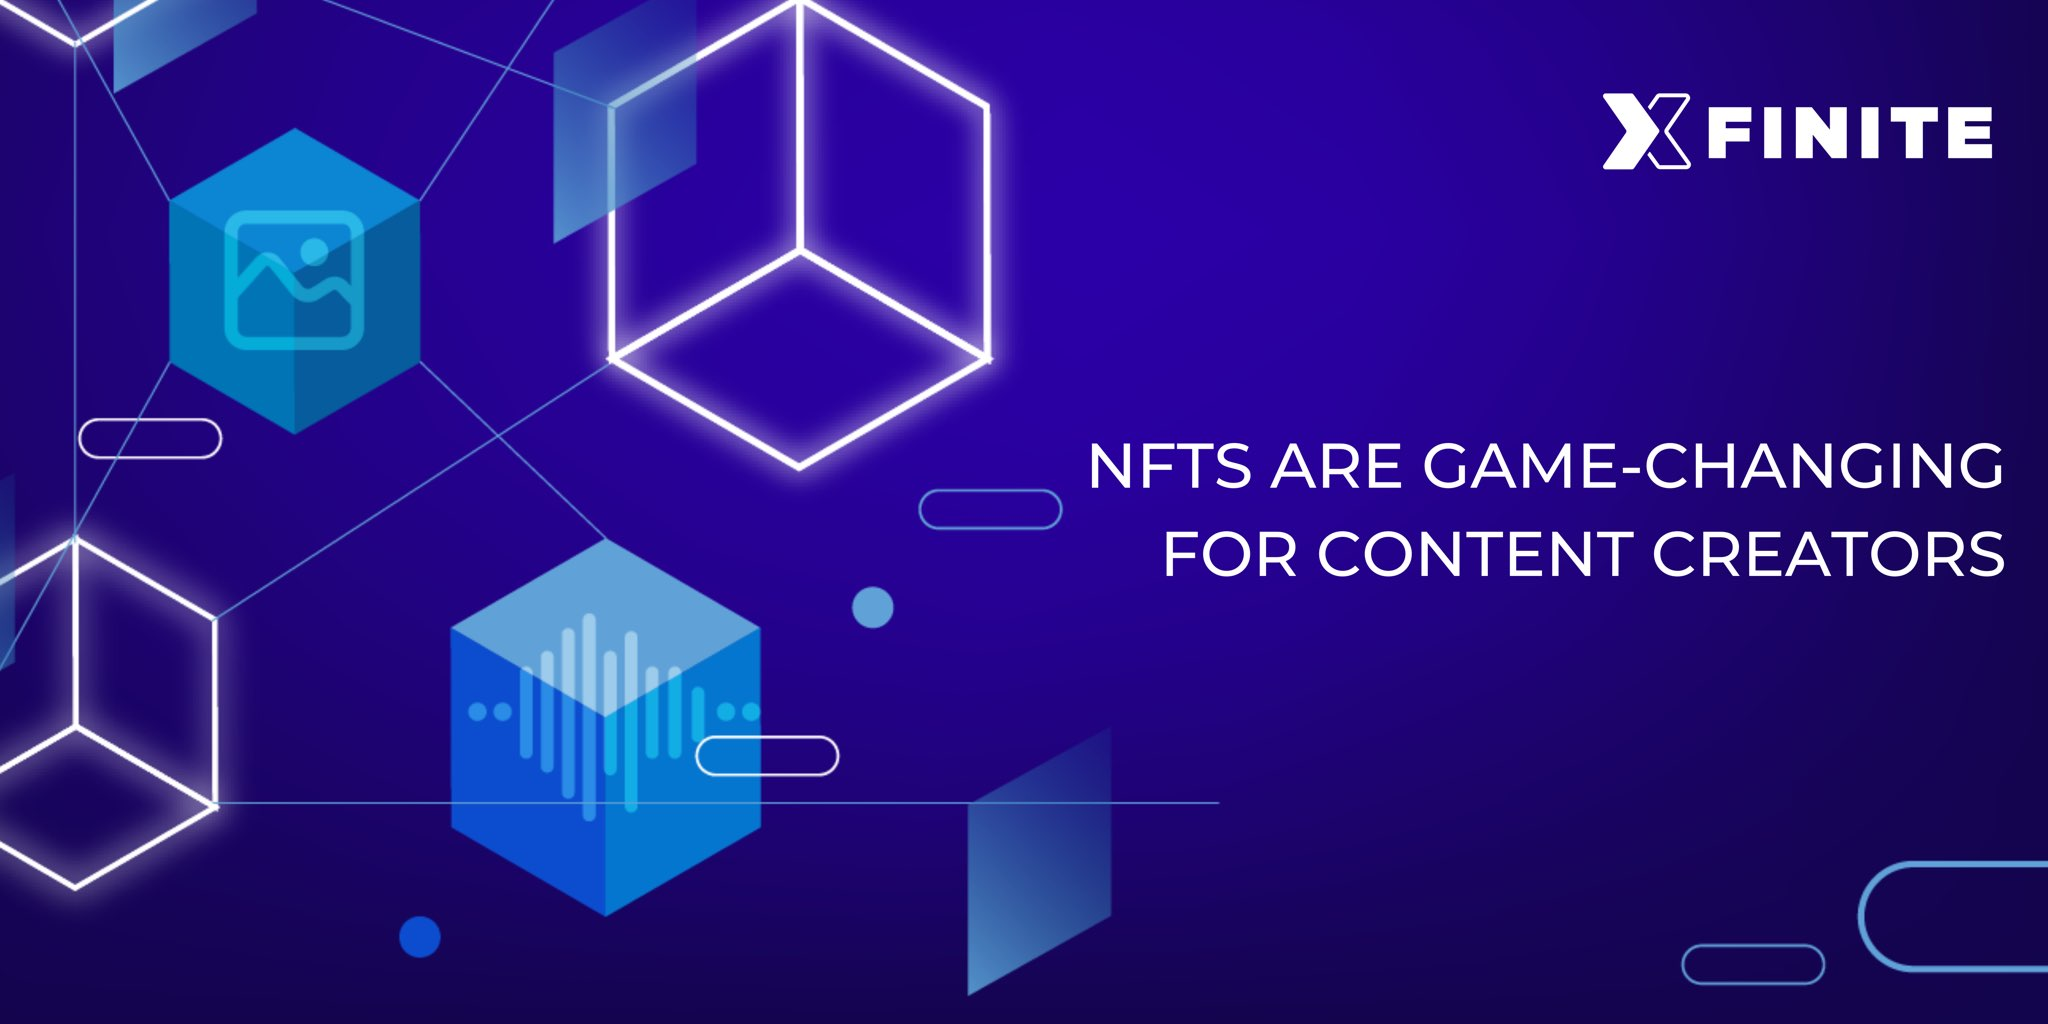 NFTs are Game-Changing for Content Creators & Associated Platforms